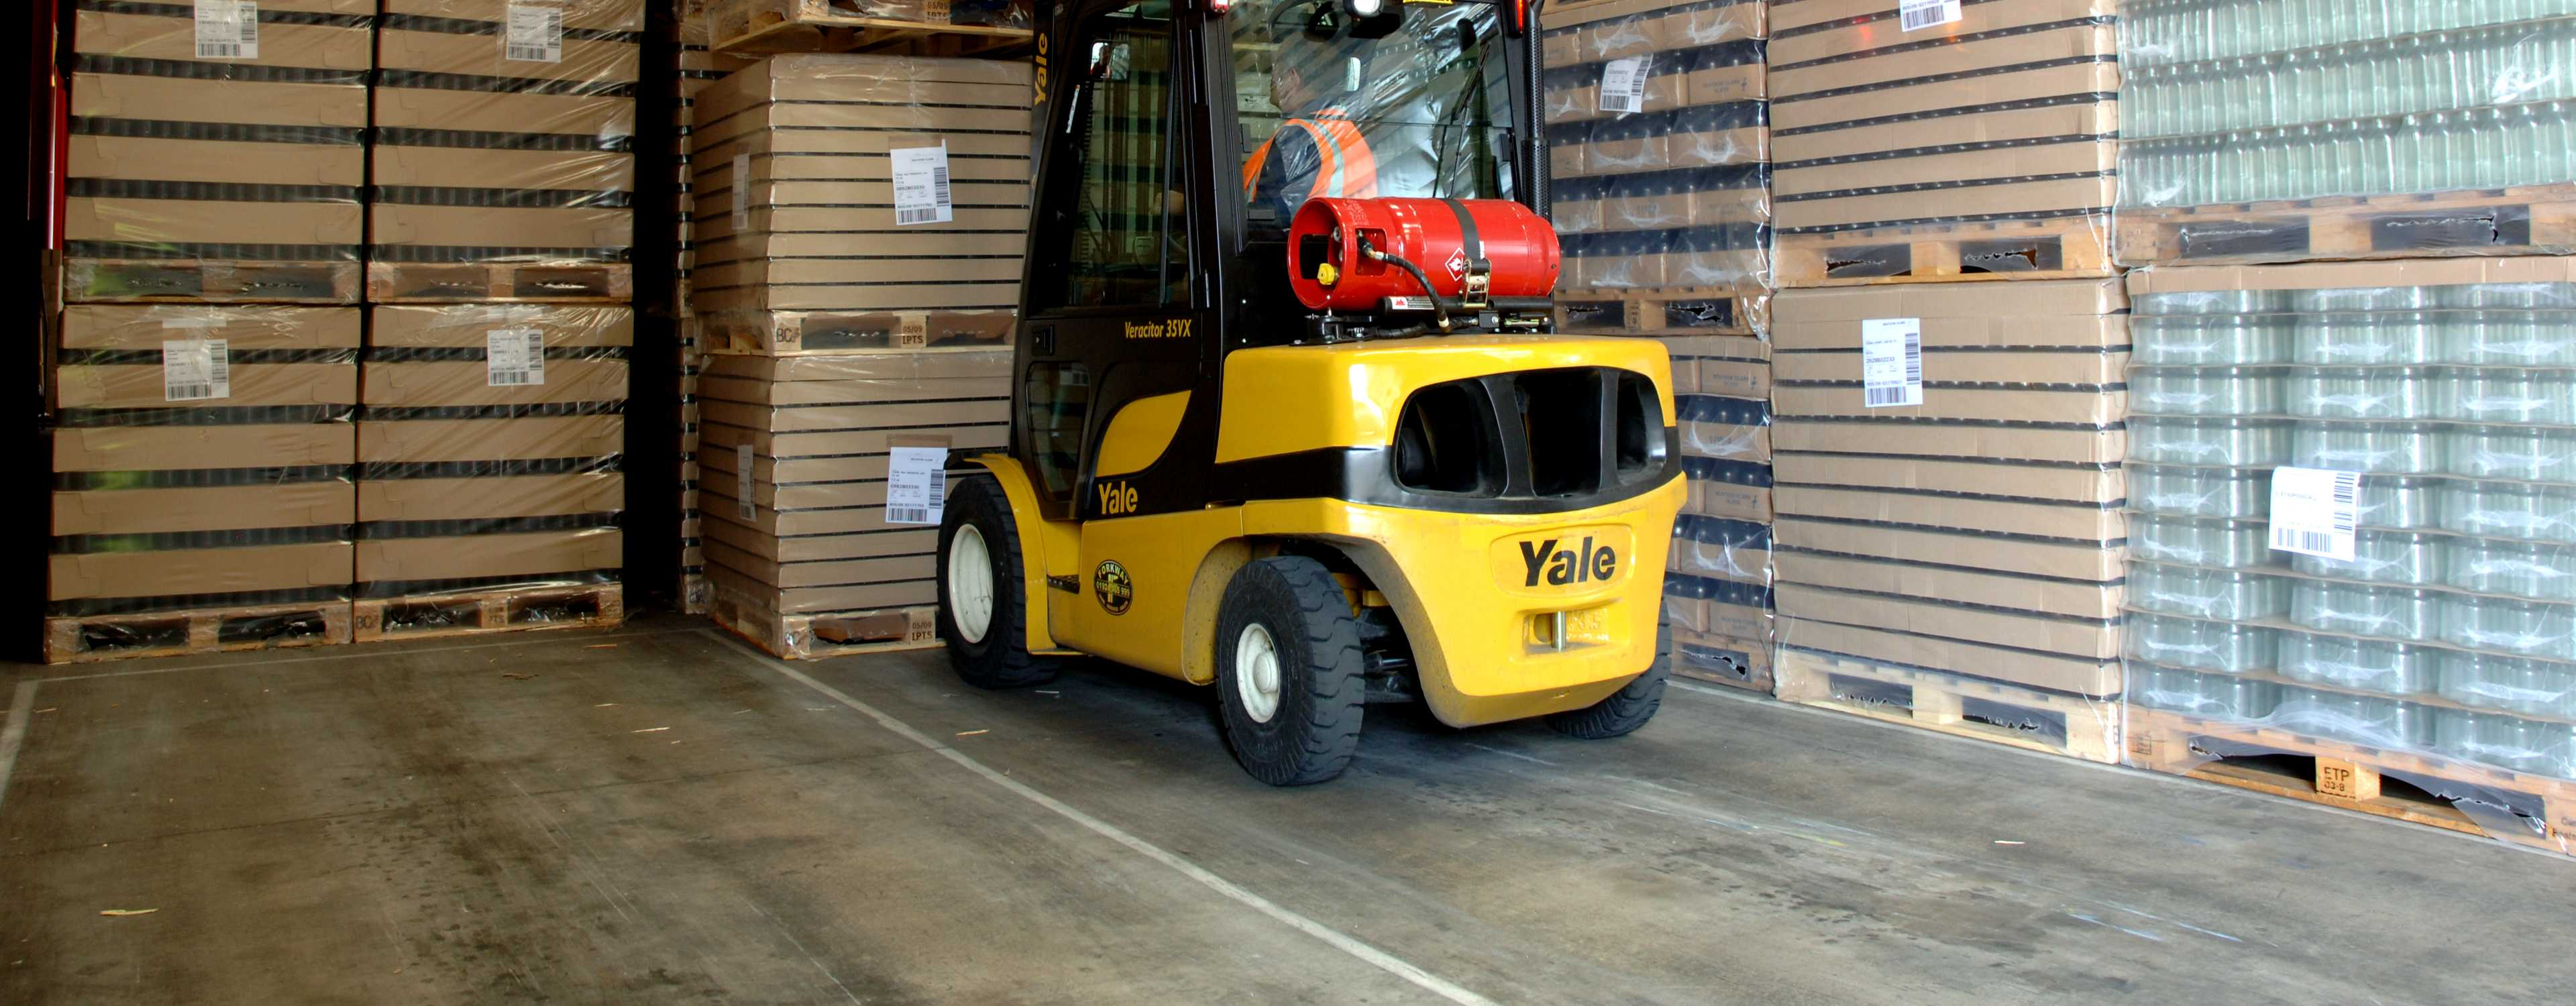 mackay forklifts